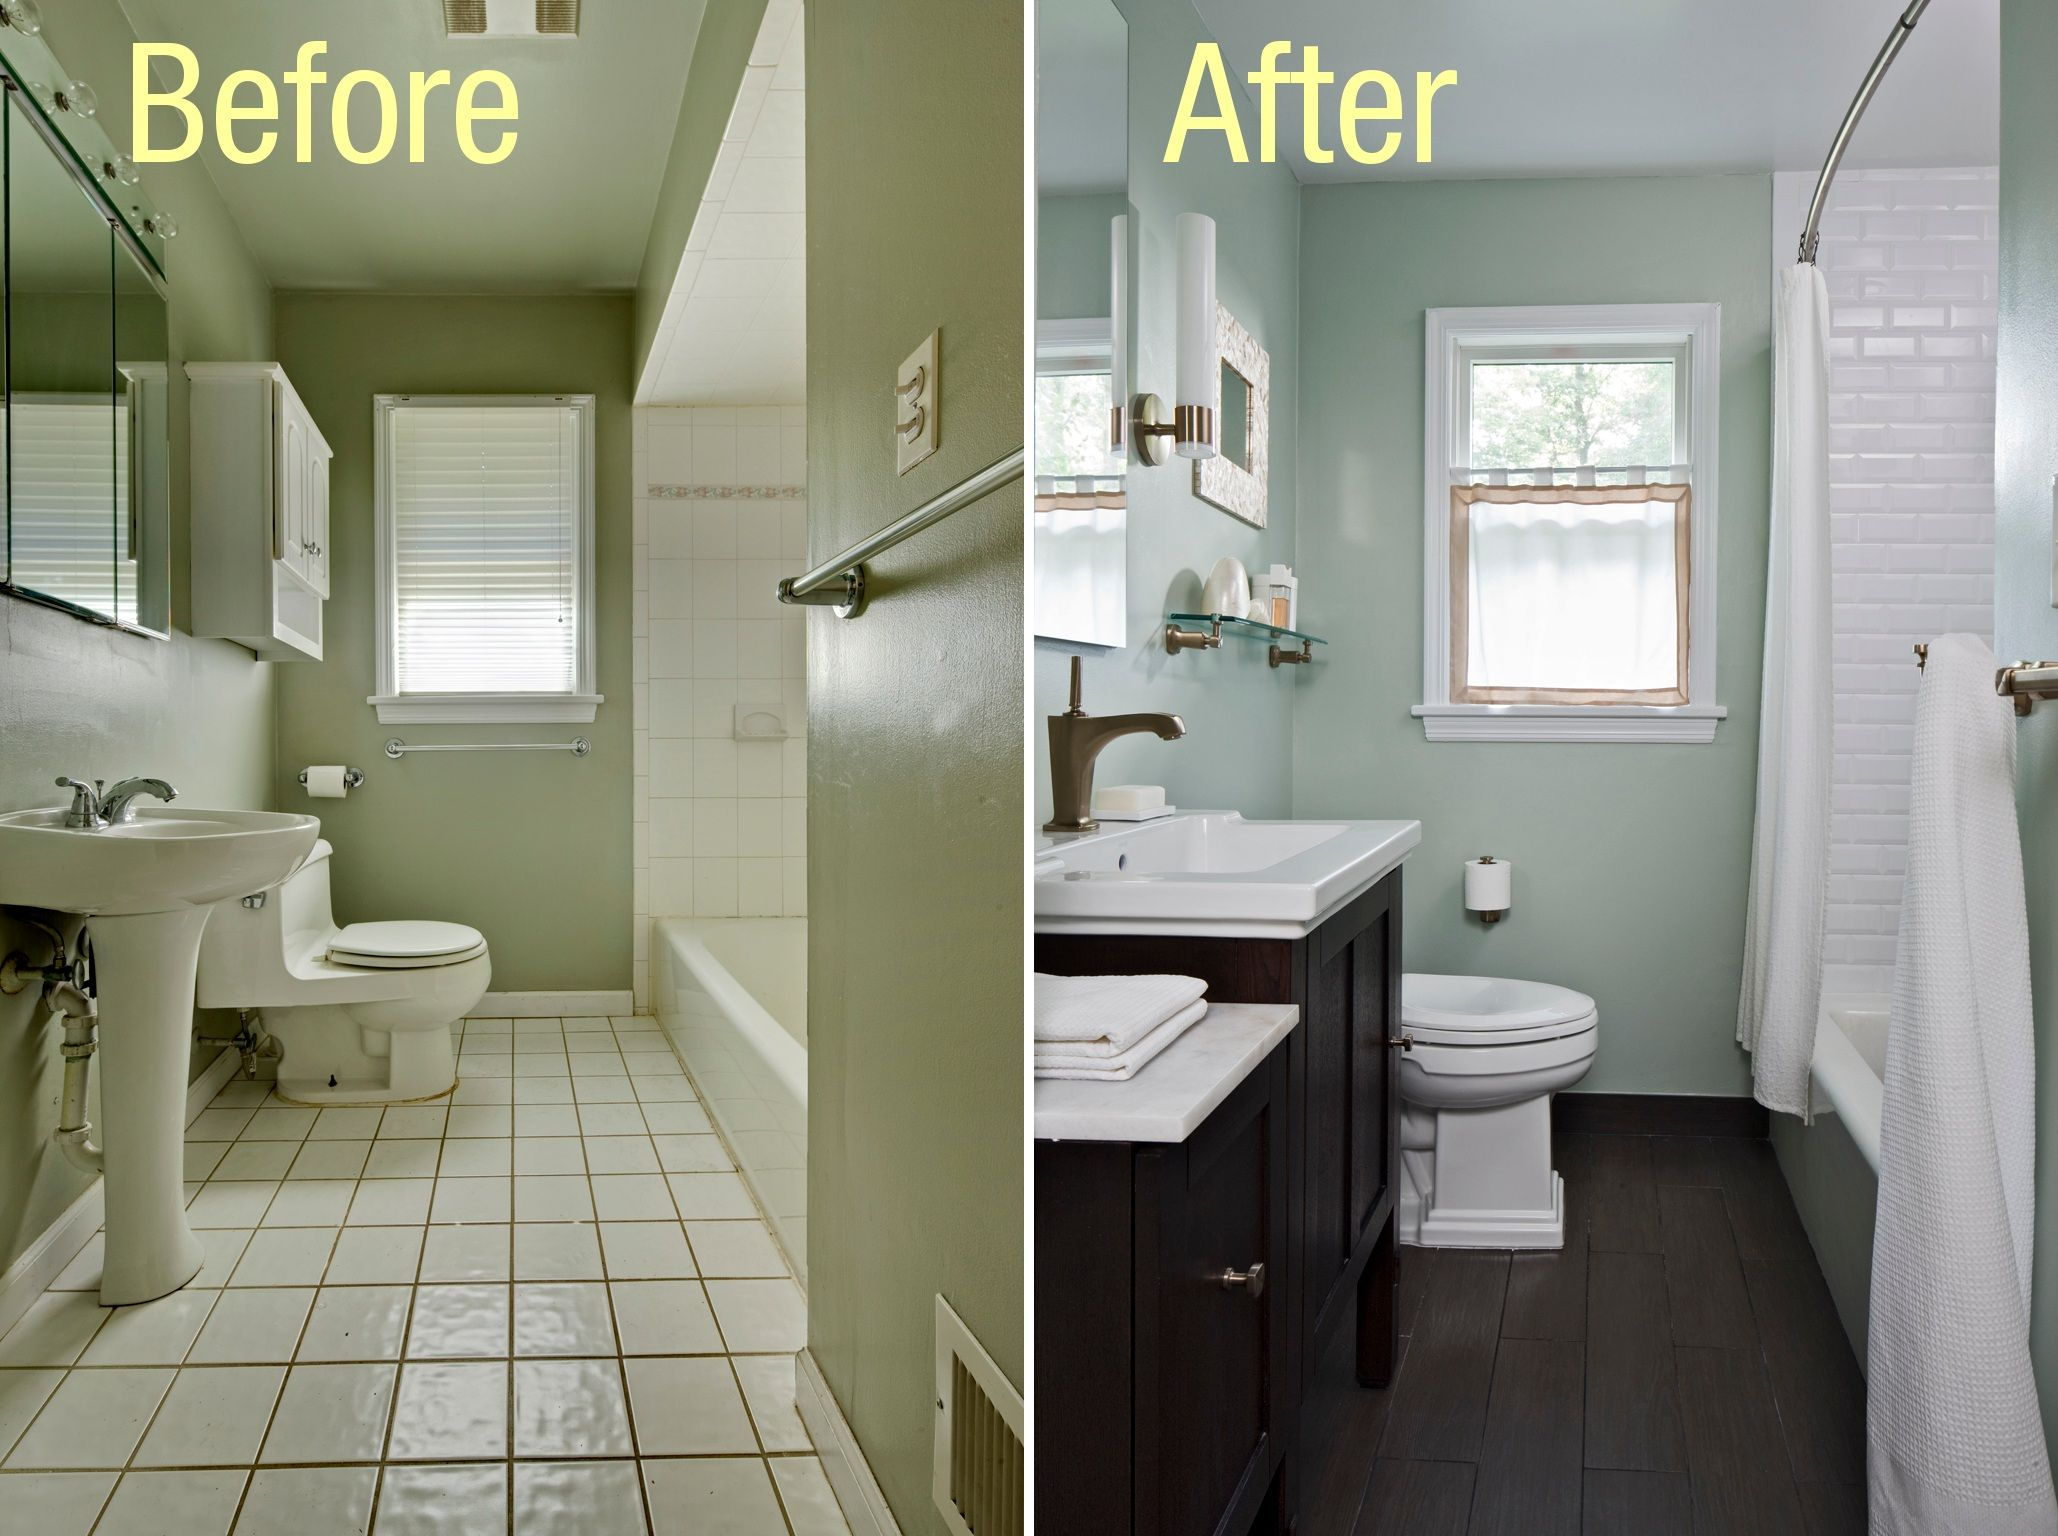 diy home decor before and after | home and house style | pinterest